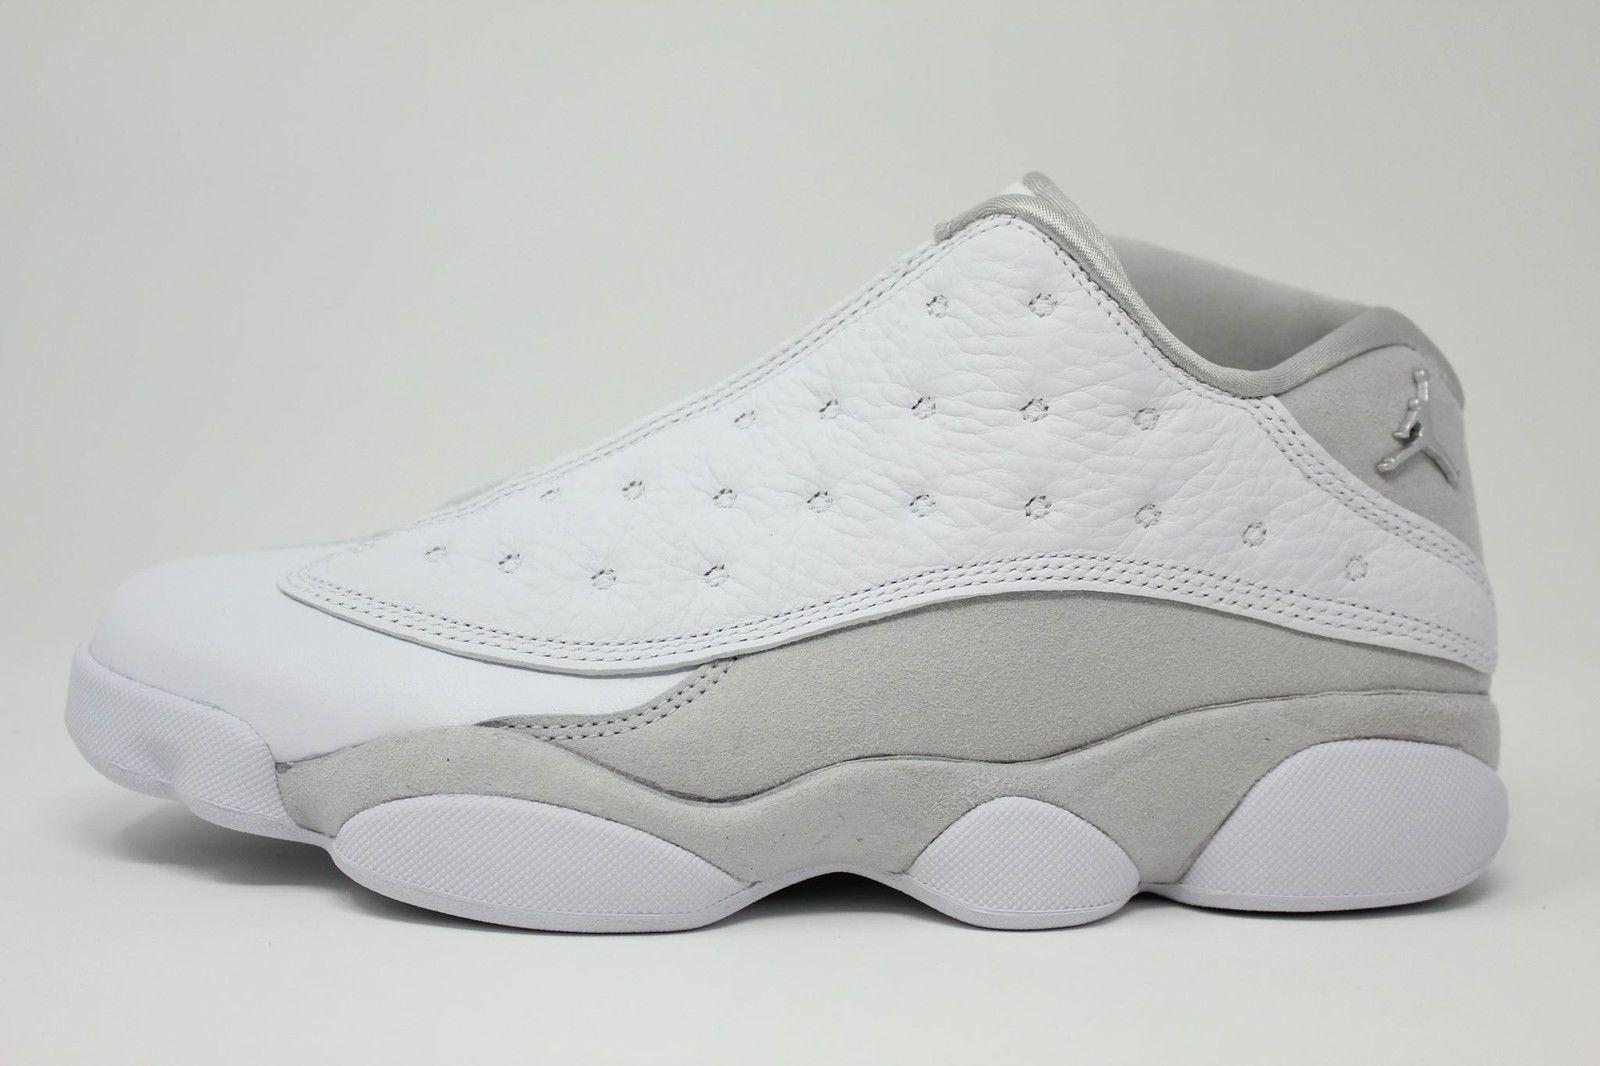 AIR JORDAN 13 METALLIC SILVER(310810-100)